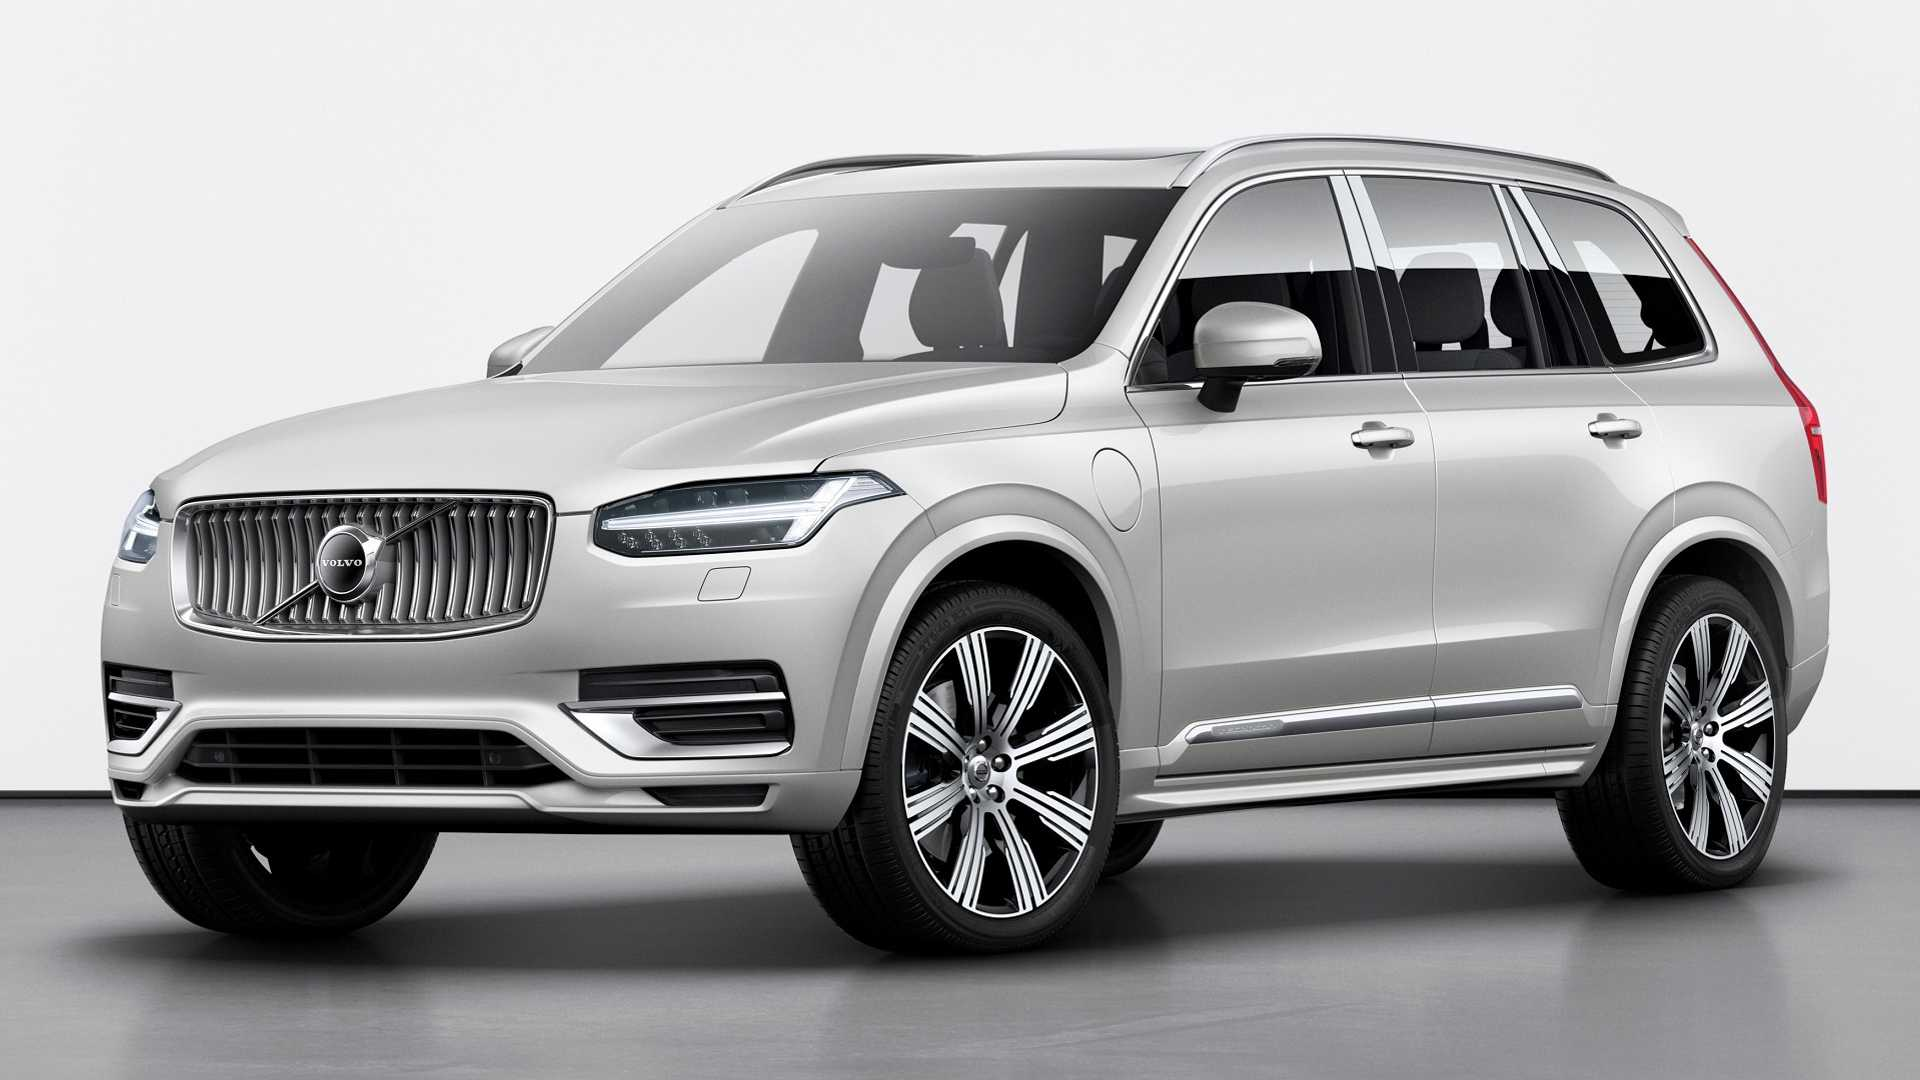 84 Concept of Volvo Xc90 Facelift 2019 Reviews by Volvo Xc90 Facelift 2019